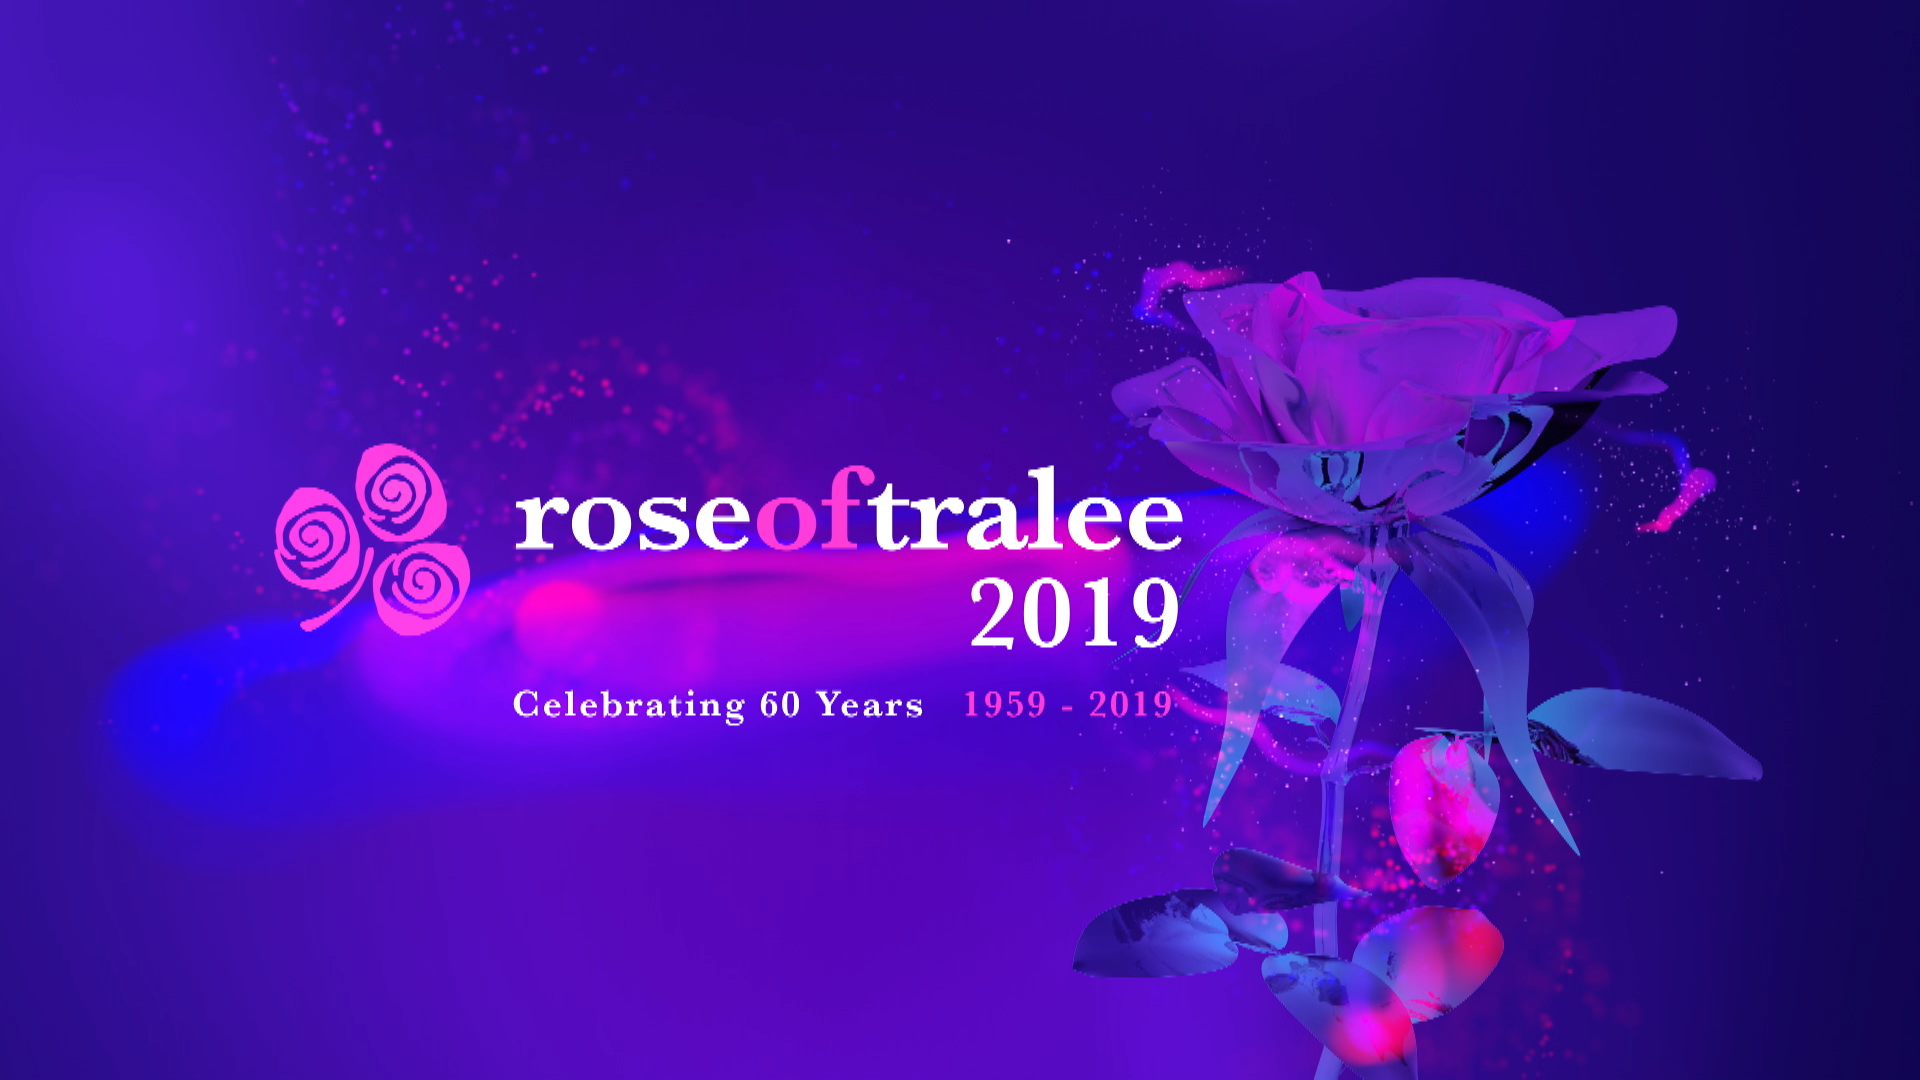 Cover image: The Rose of Tralee